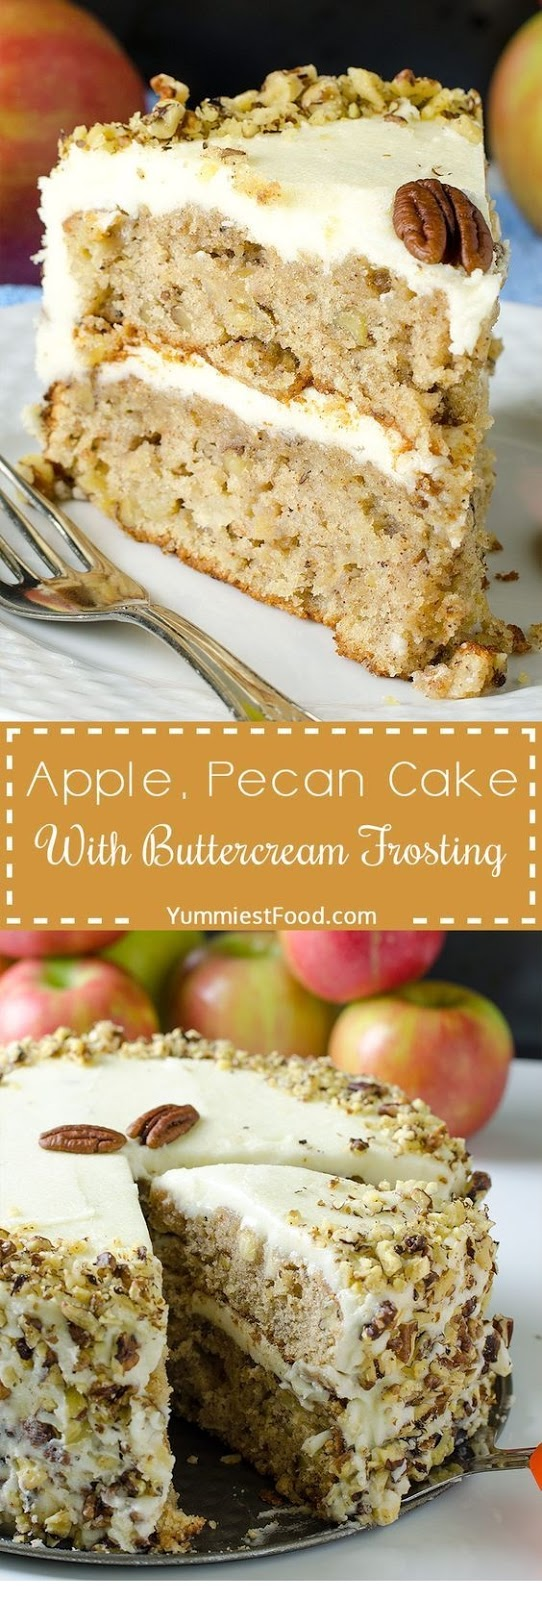 Apple, Pecan Cake With Buttercream Frosting Recipe